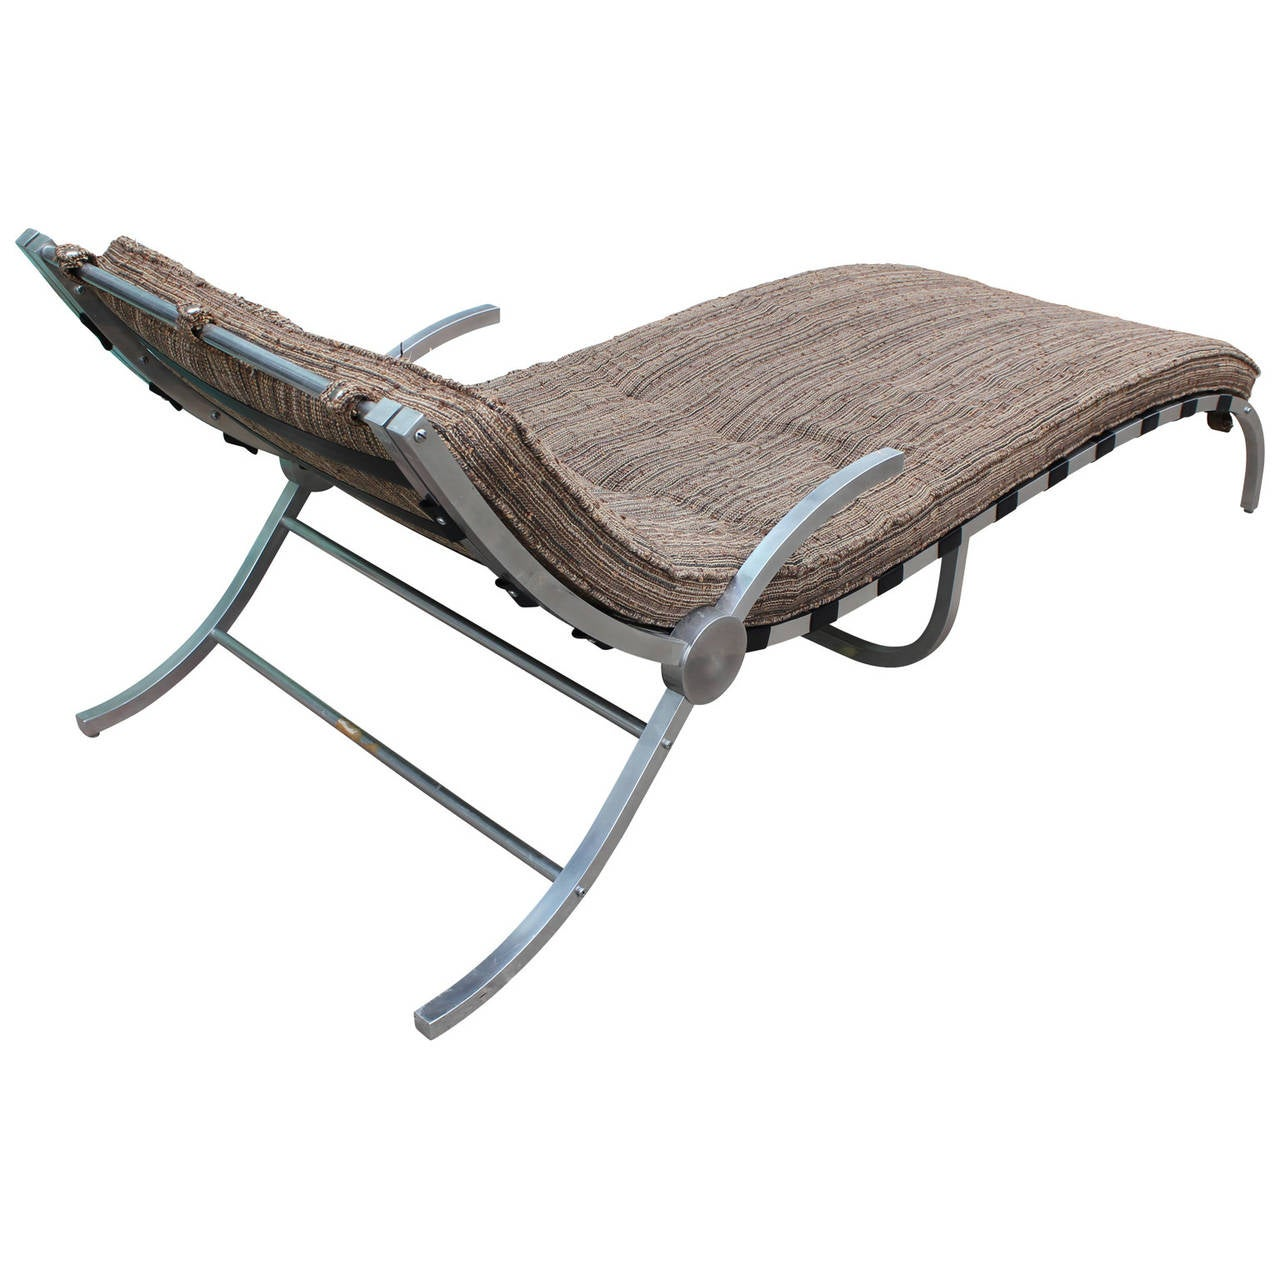 Sculptural mid century modern aluminum chaise lounge for for Chaise for sale